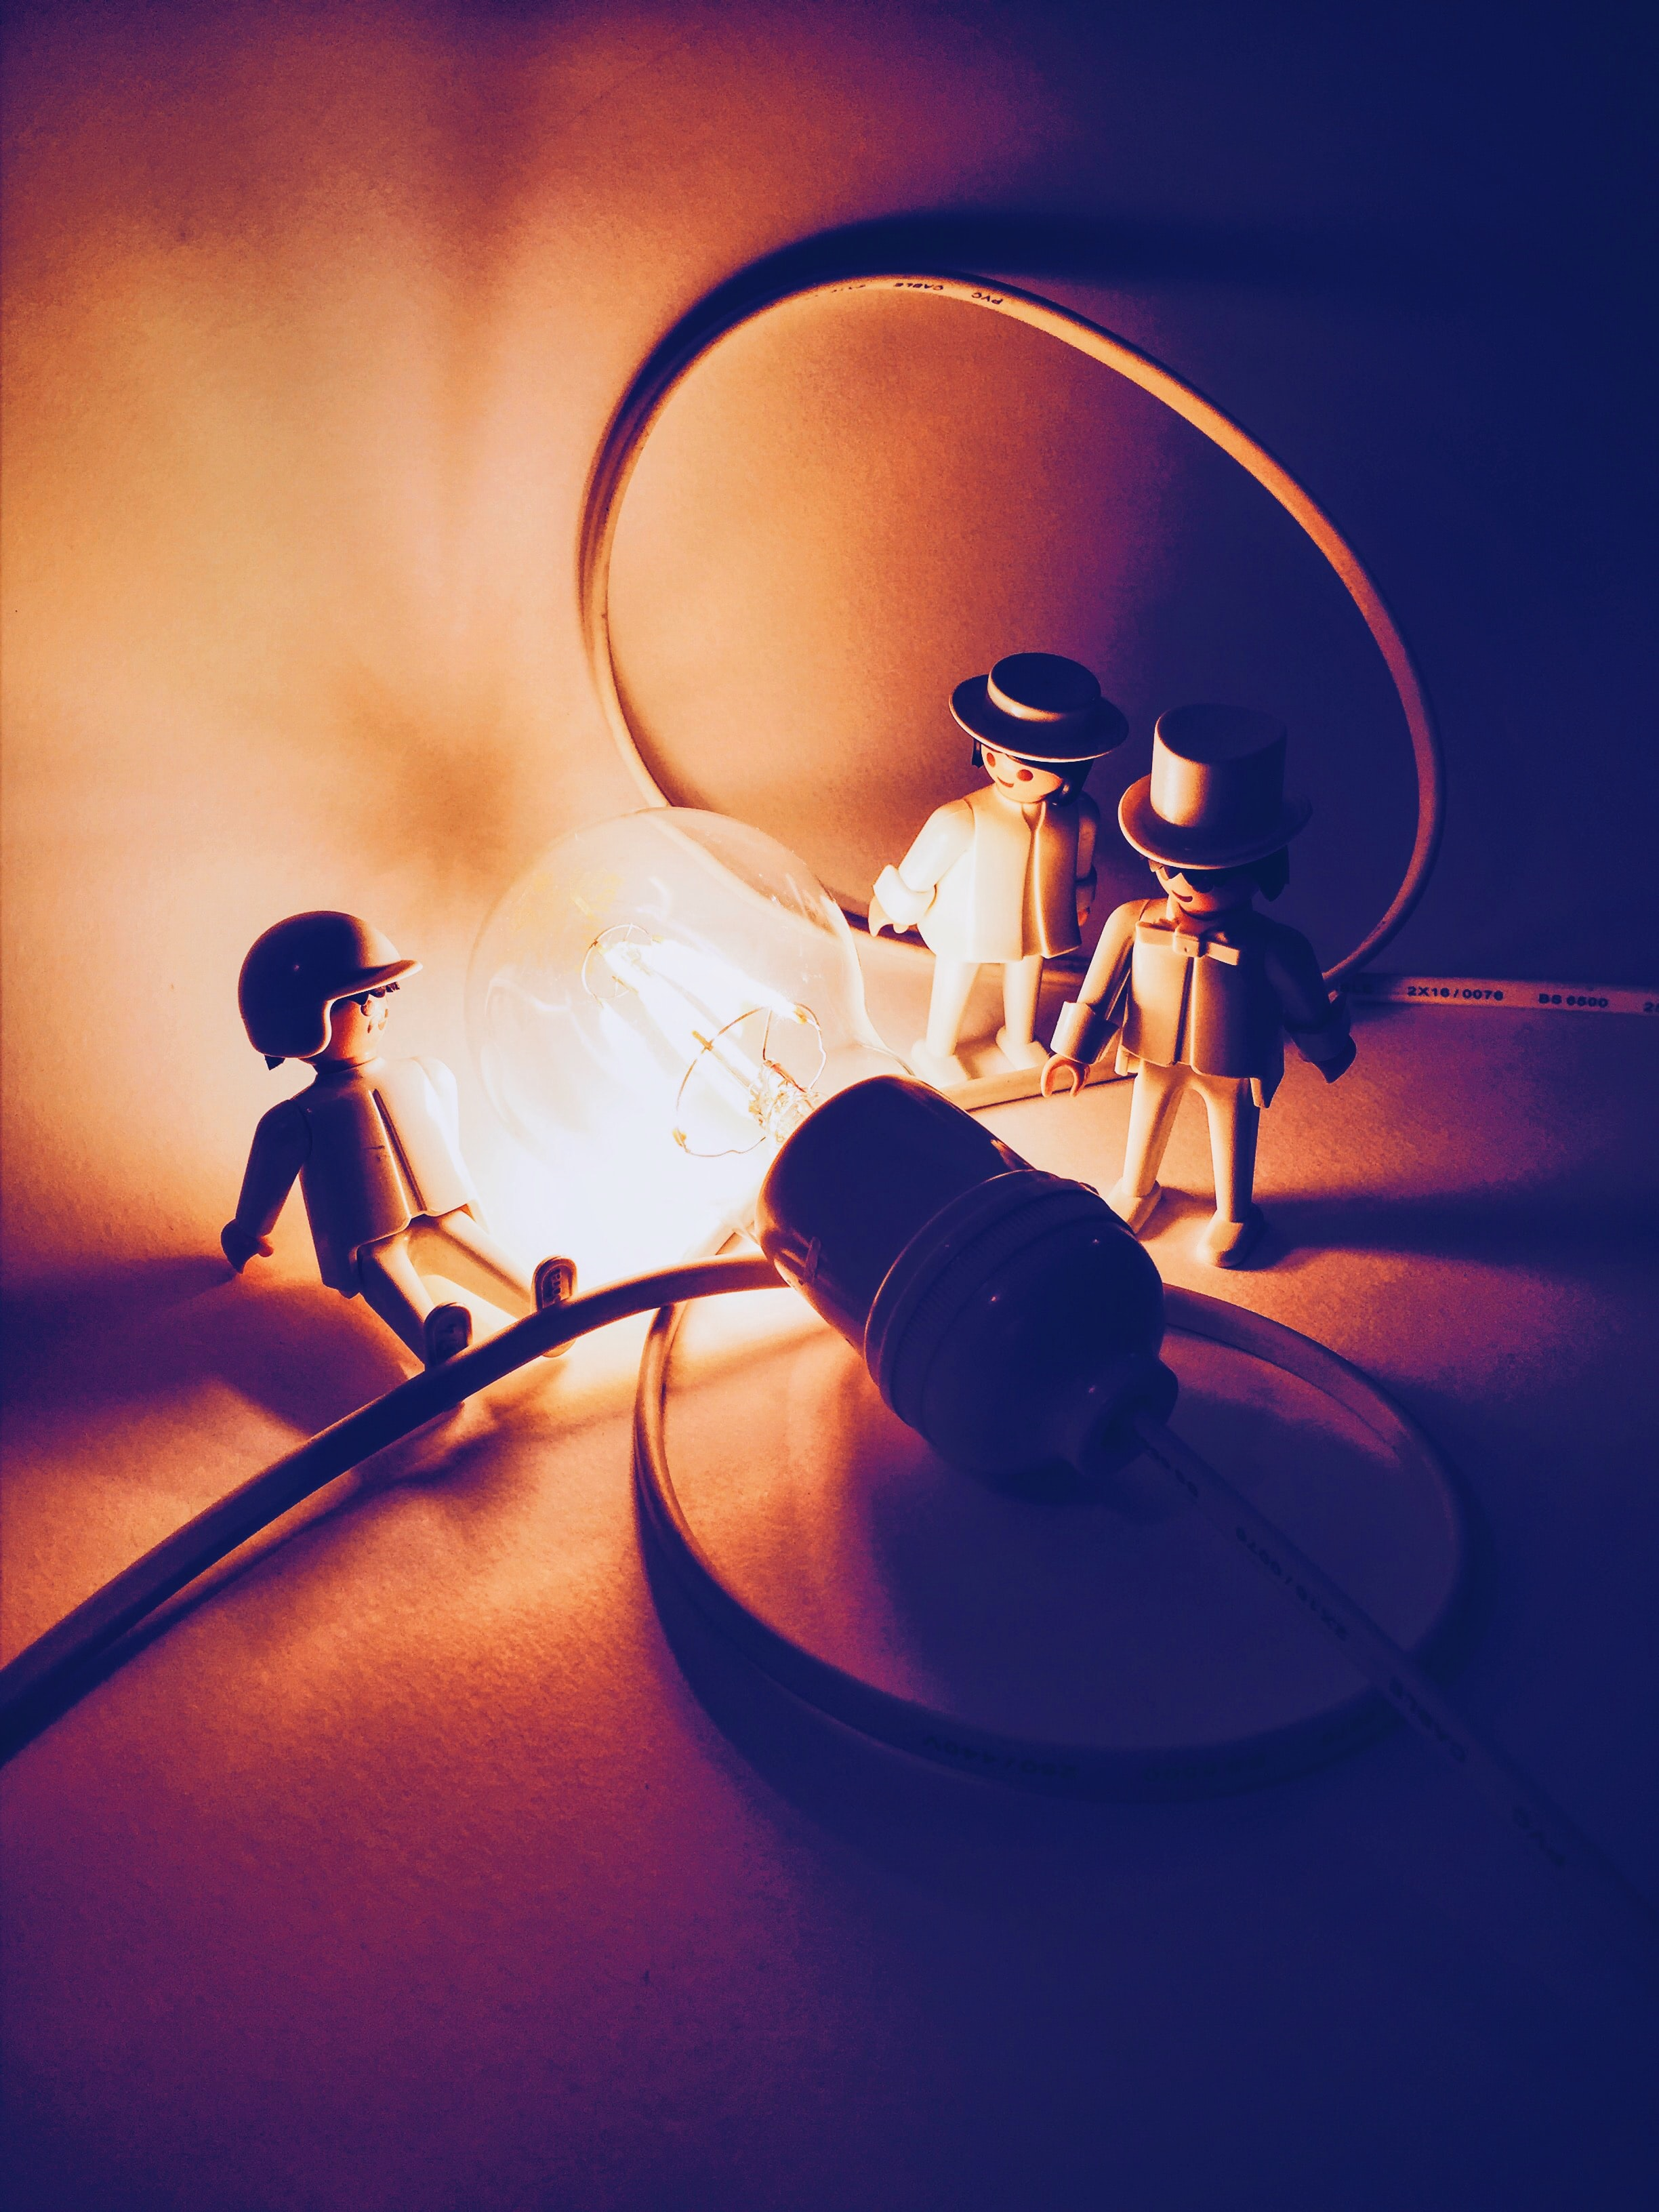 selective focus photography of three men figurines near lighted light bulb